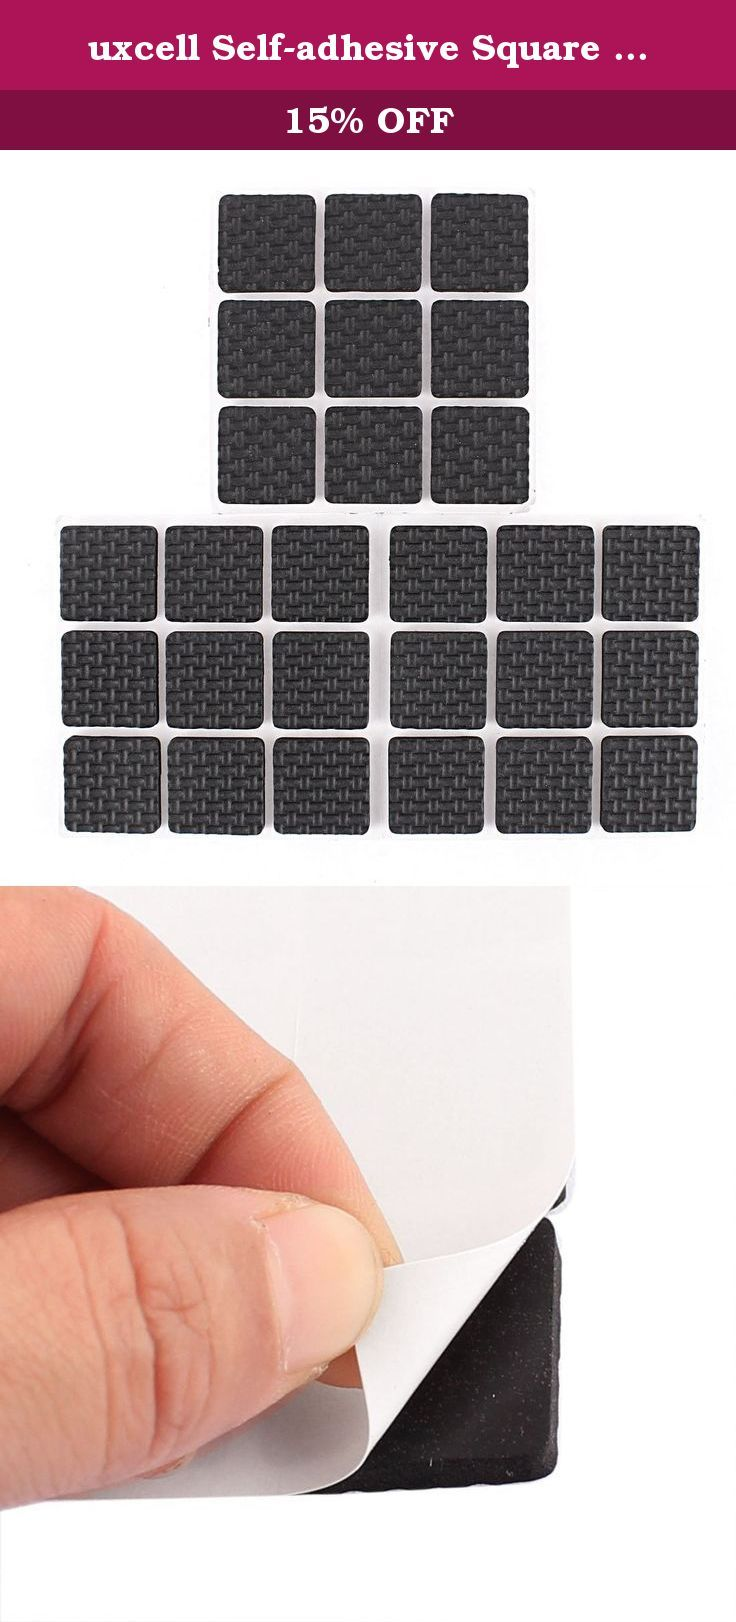 Uxcell Self Adhesive Square Shape Furniture Protection Cushion Pads Mat  27pcs. Features: Self